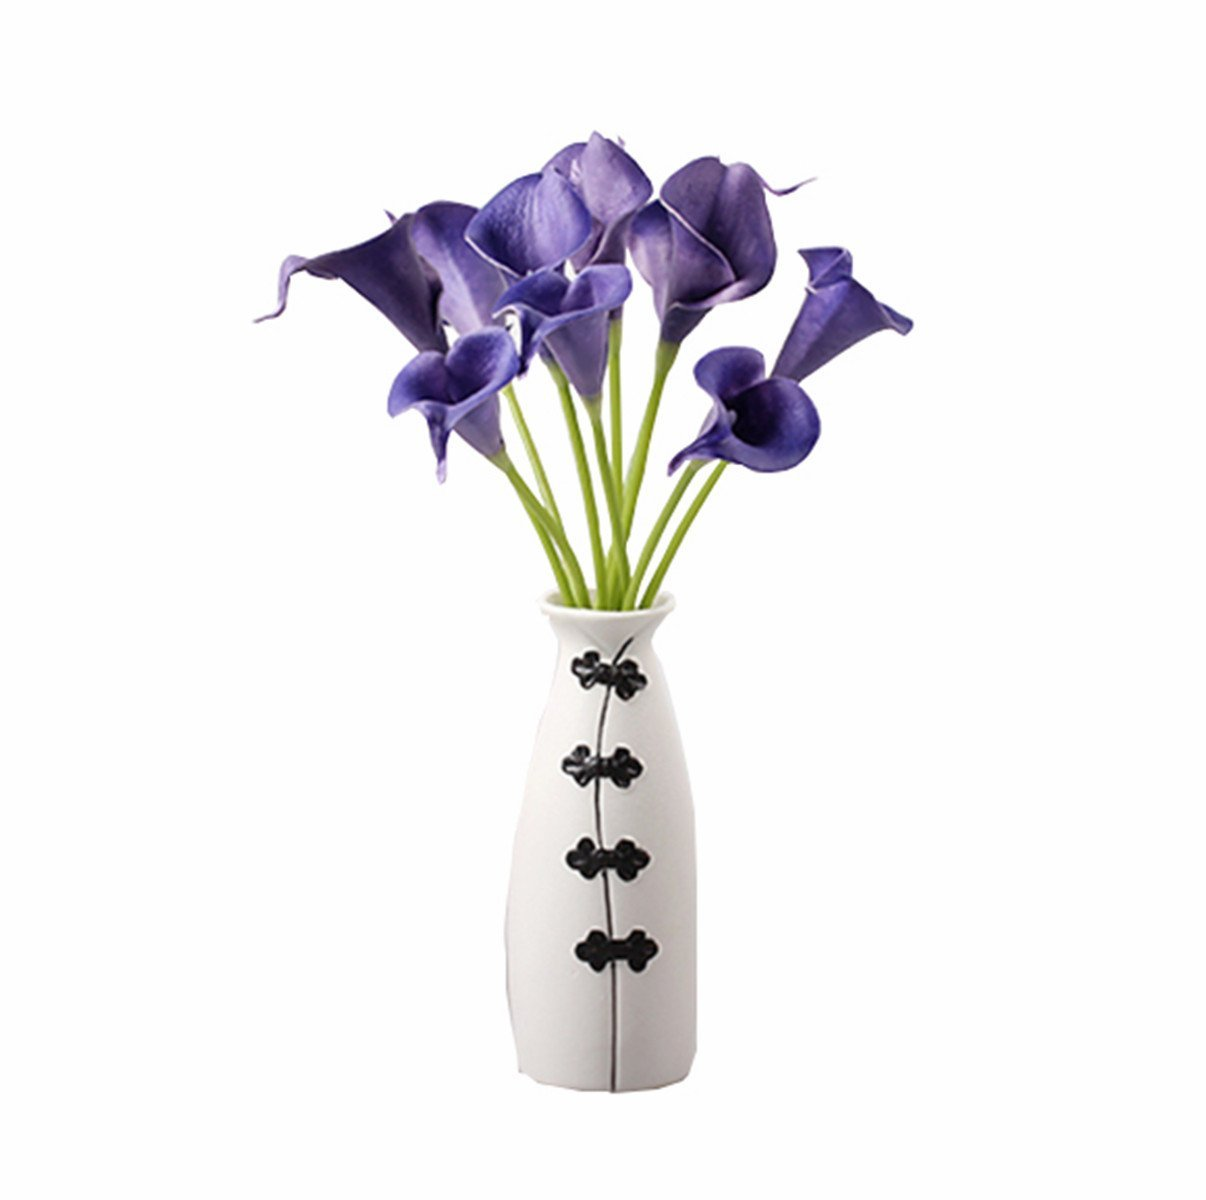 Cheap calla lily silk flowers find calla lily silk flowers deals on get quotations purple calla lily home party wedding posy real touch latex silk flowers bouquet artificial pu flowers izmirmasajfo